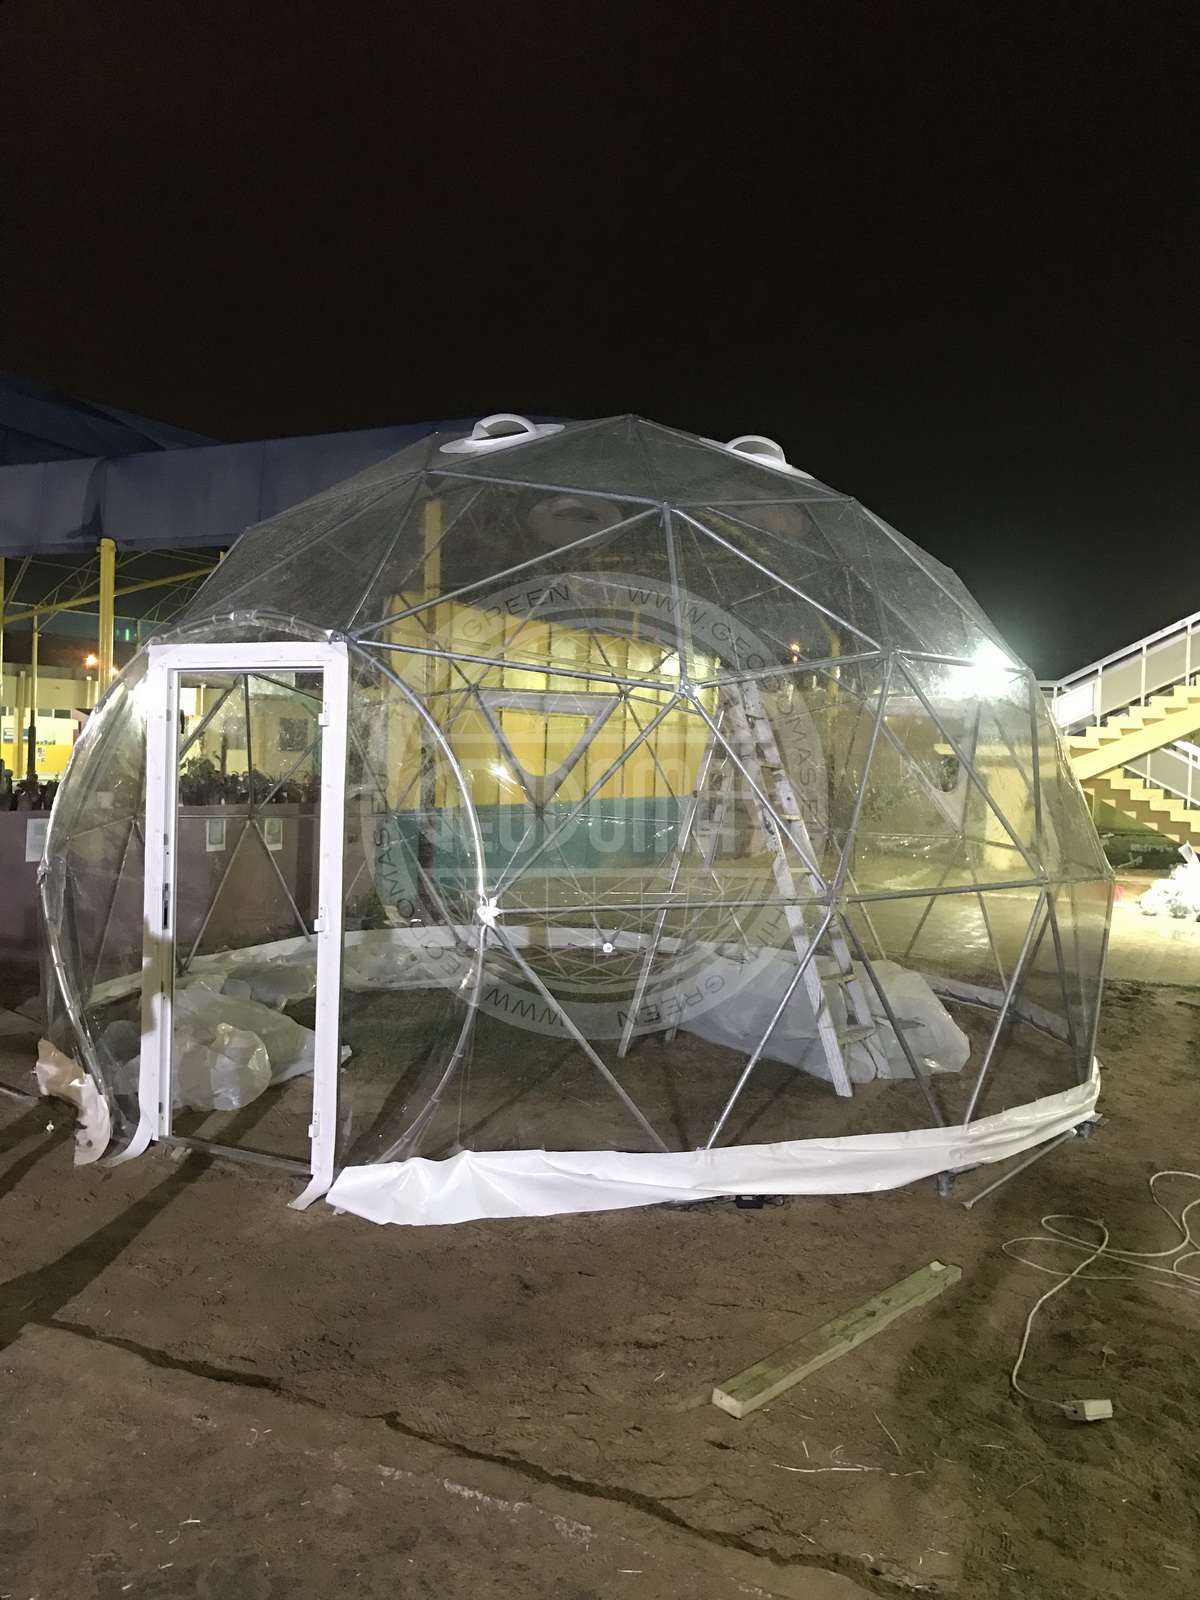 Biodome Ø6m inside a The Philippine Global School | UAE,  Abu Dhabi